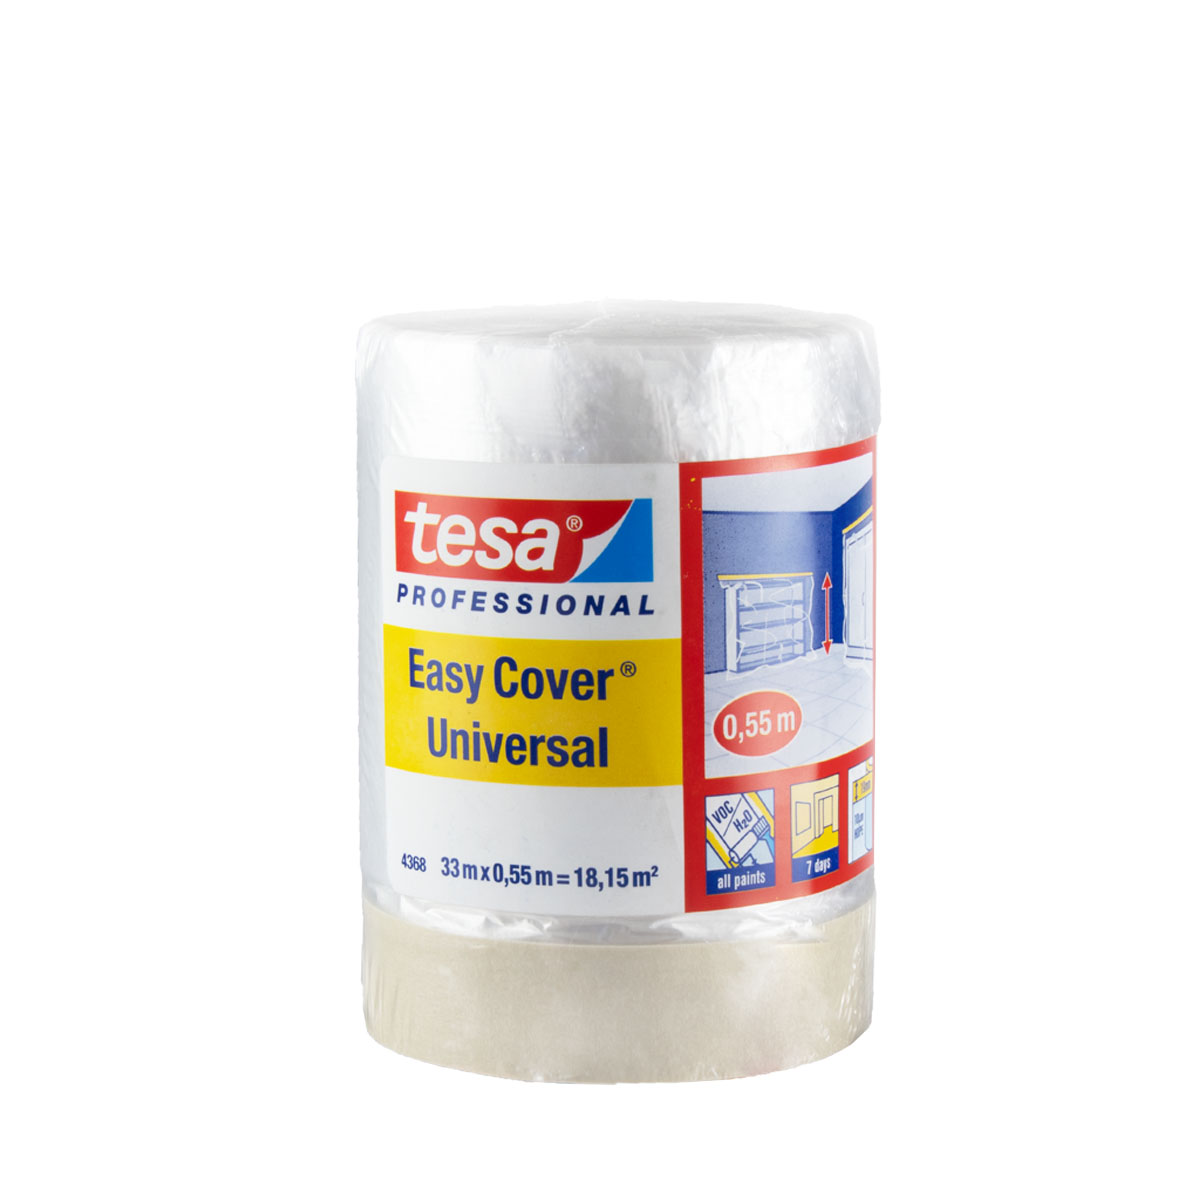 Tesa Easy Cover 4368 Universal 1800mm x 33m, Abdeckfolie 2in1